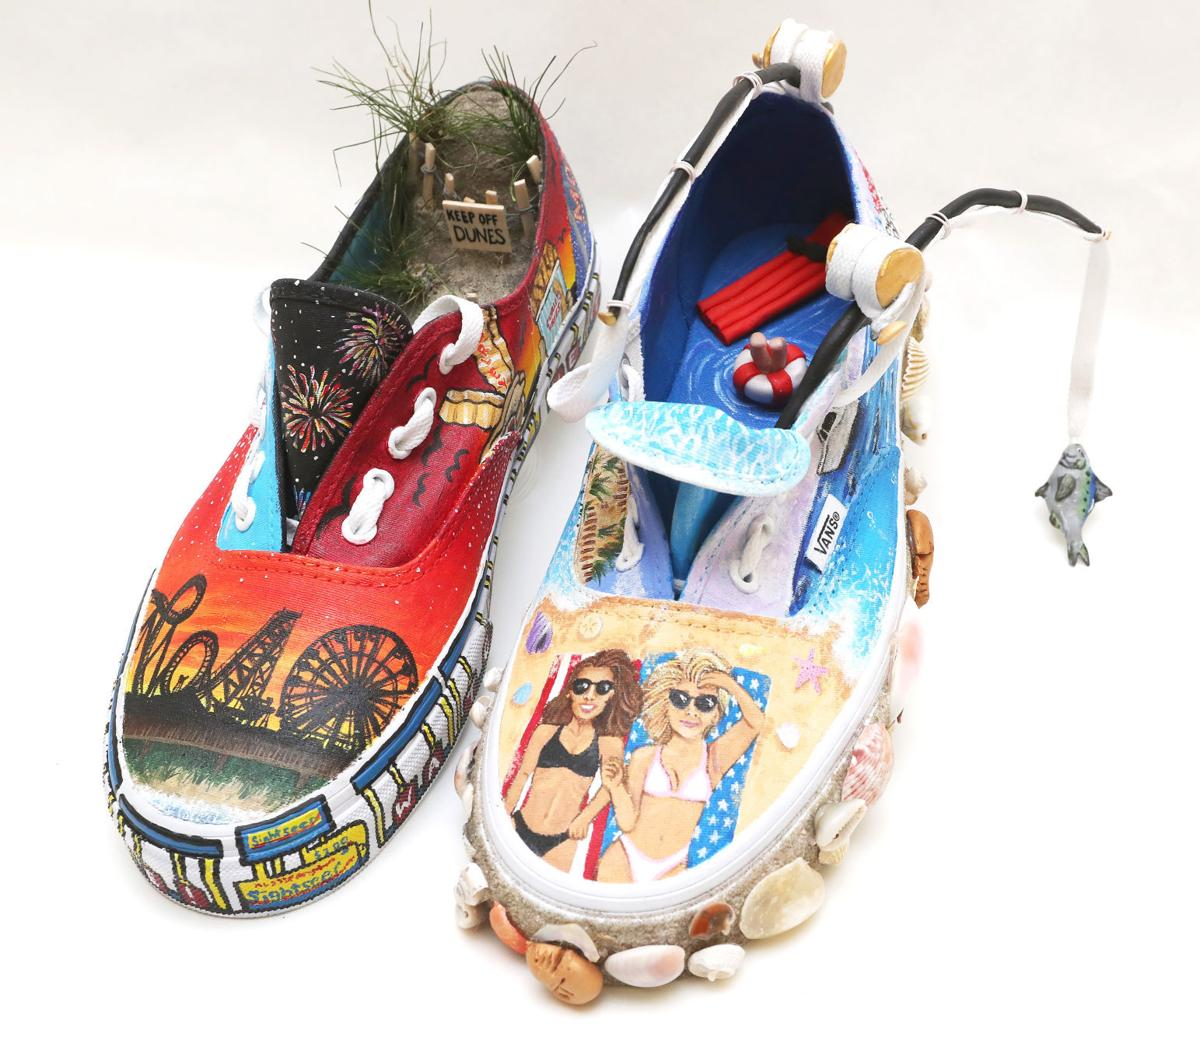 c7a76f7d024a Middle Twp. High School students compete in Vans art contest for  75 ...